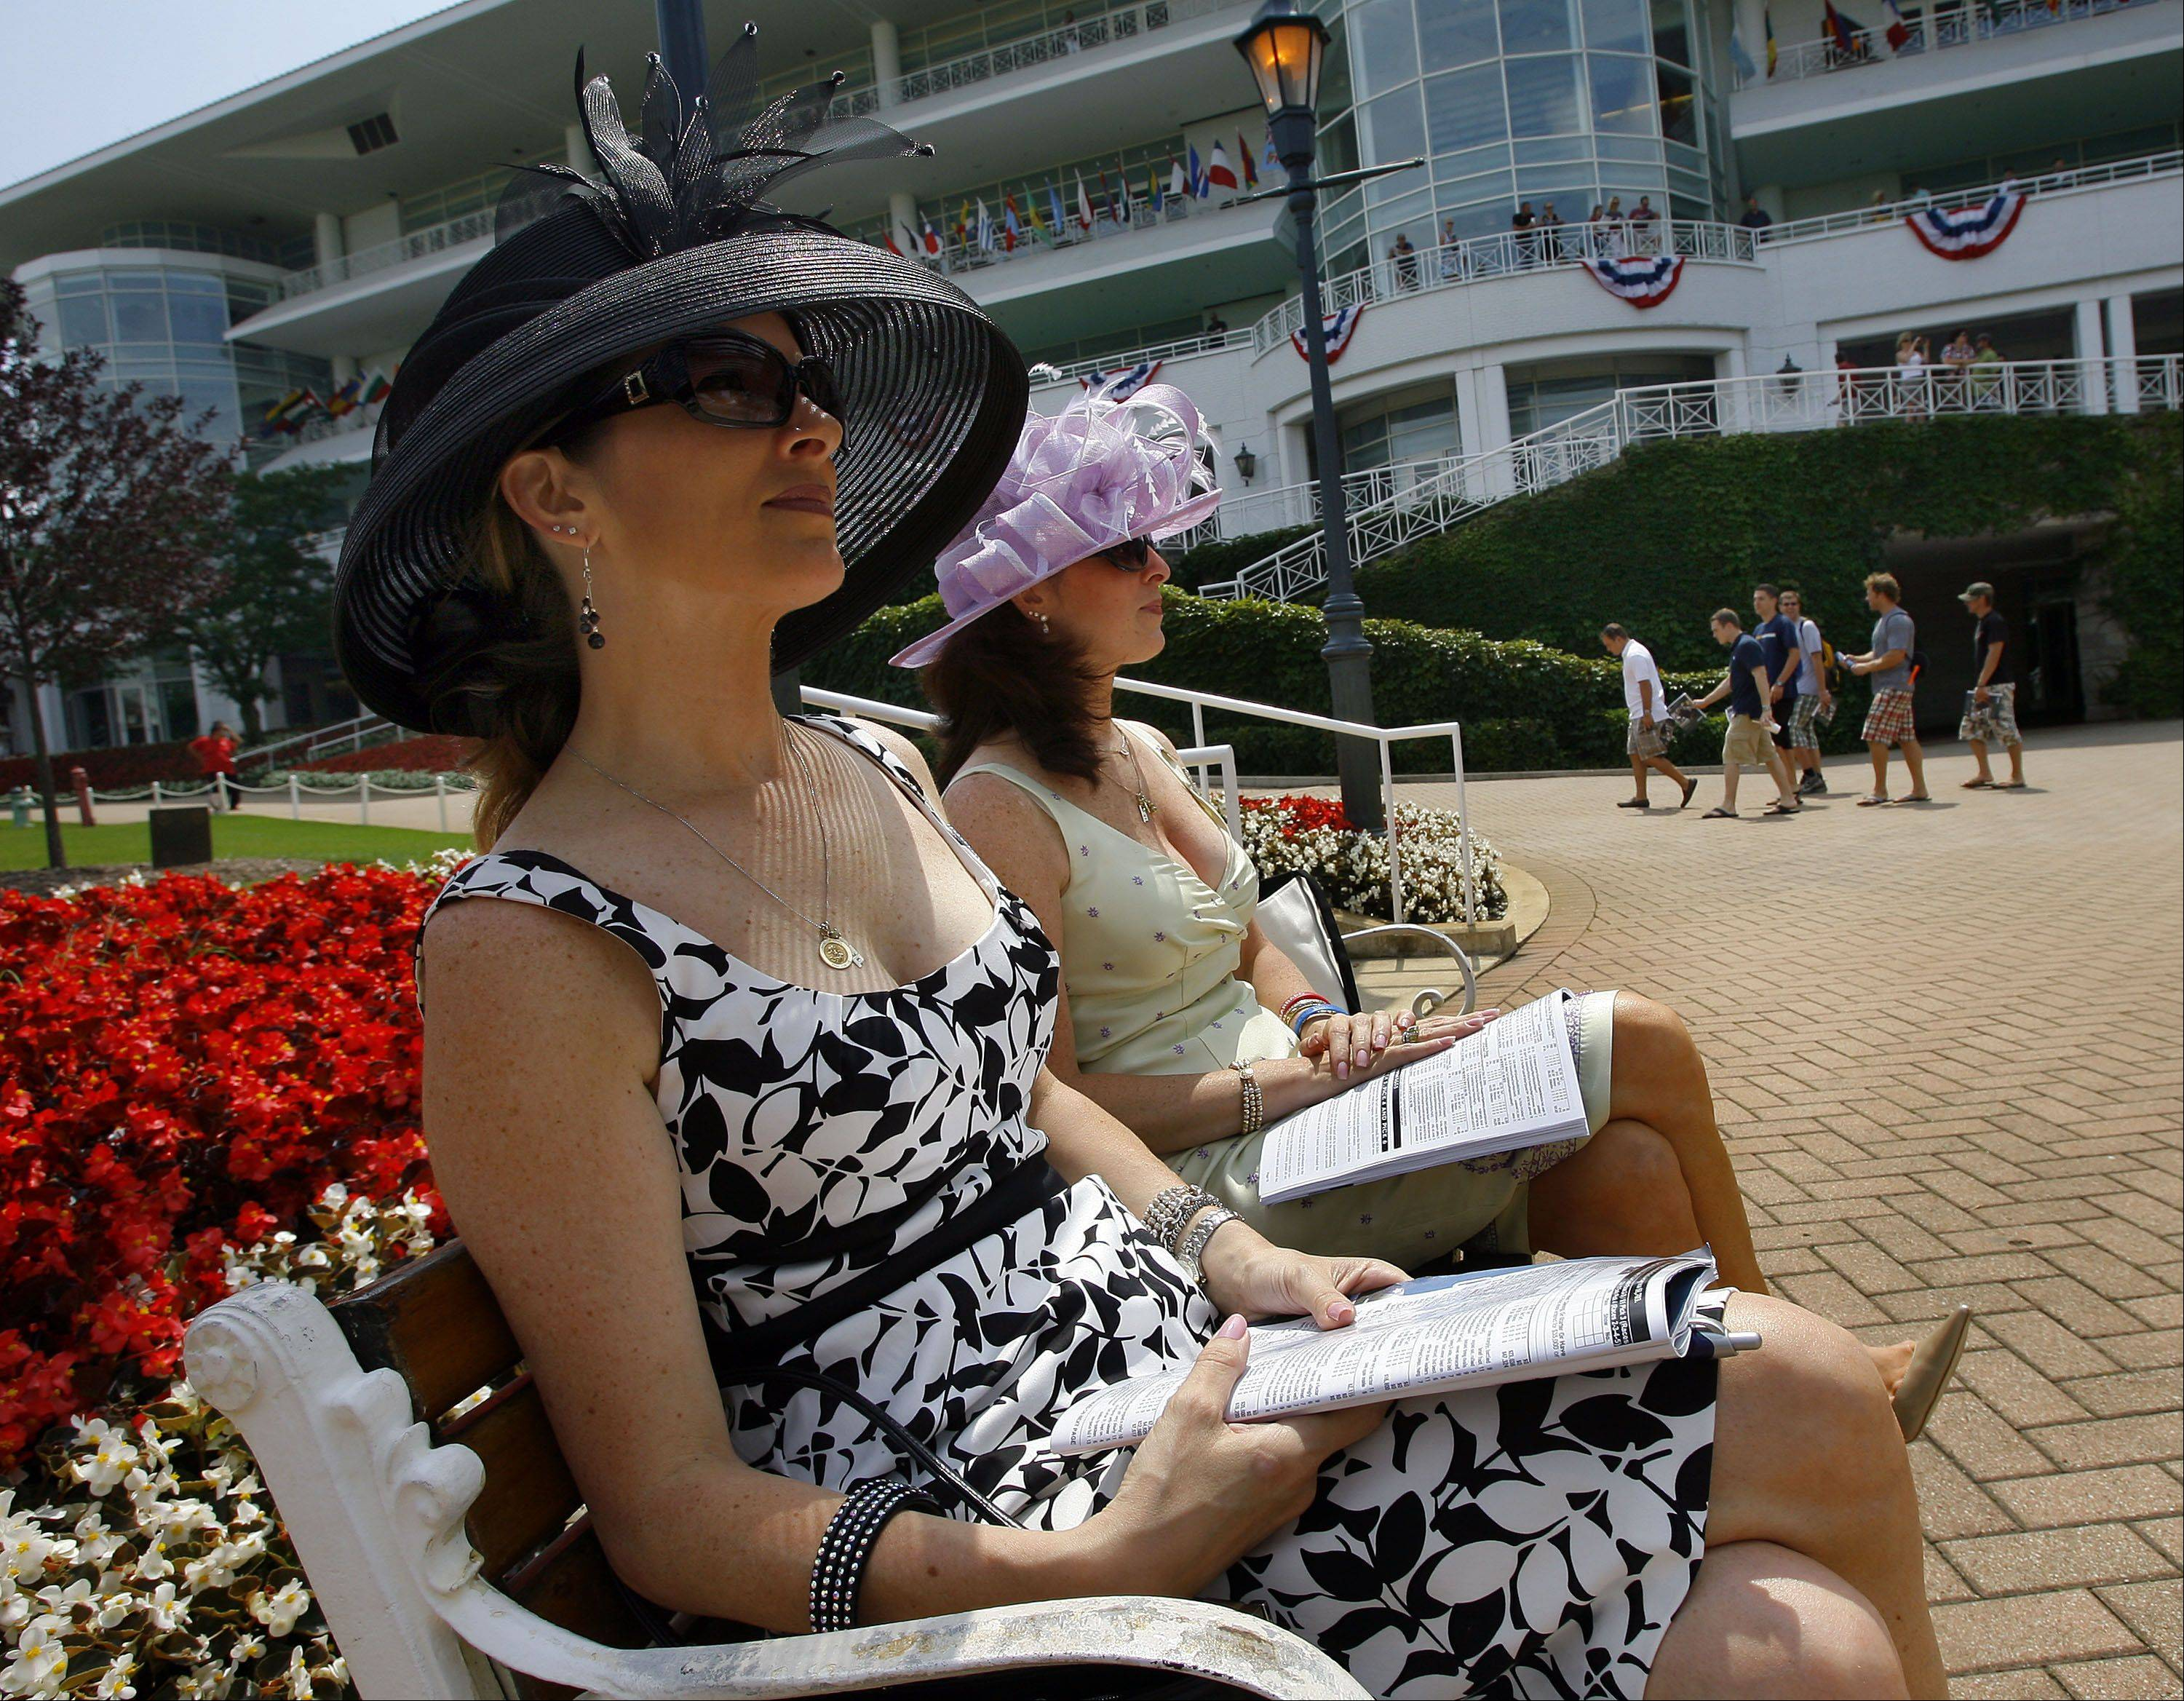 From left, Donna Ludvik and her sister Dora Petrulis relax before the start of the 27th running of the Arlington Million horse race at Arlington Park Race Track Saturday, Aug. 8, 2010, in Arlington Heights, Ill.